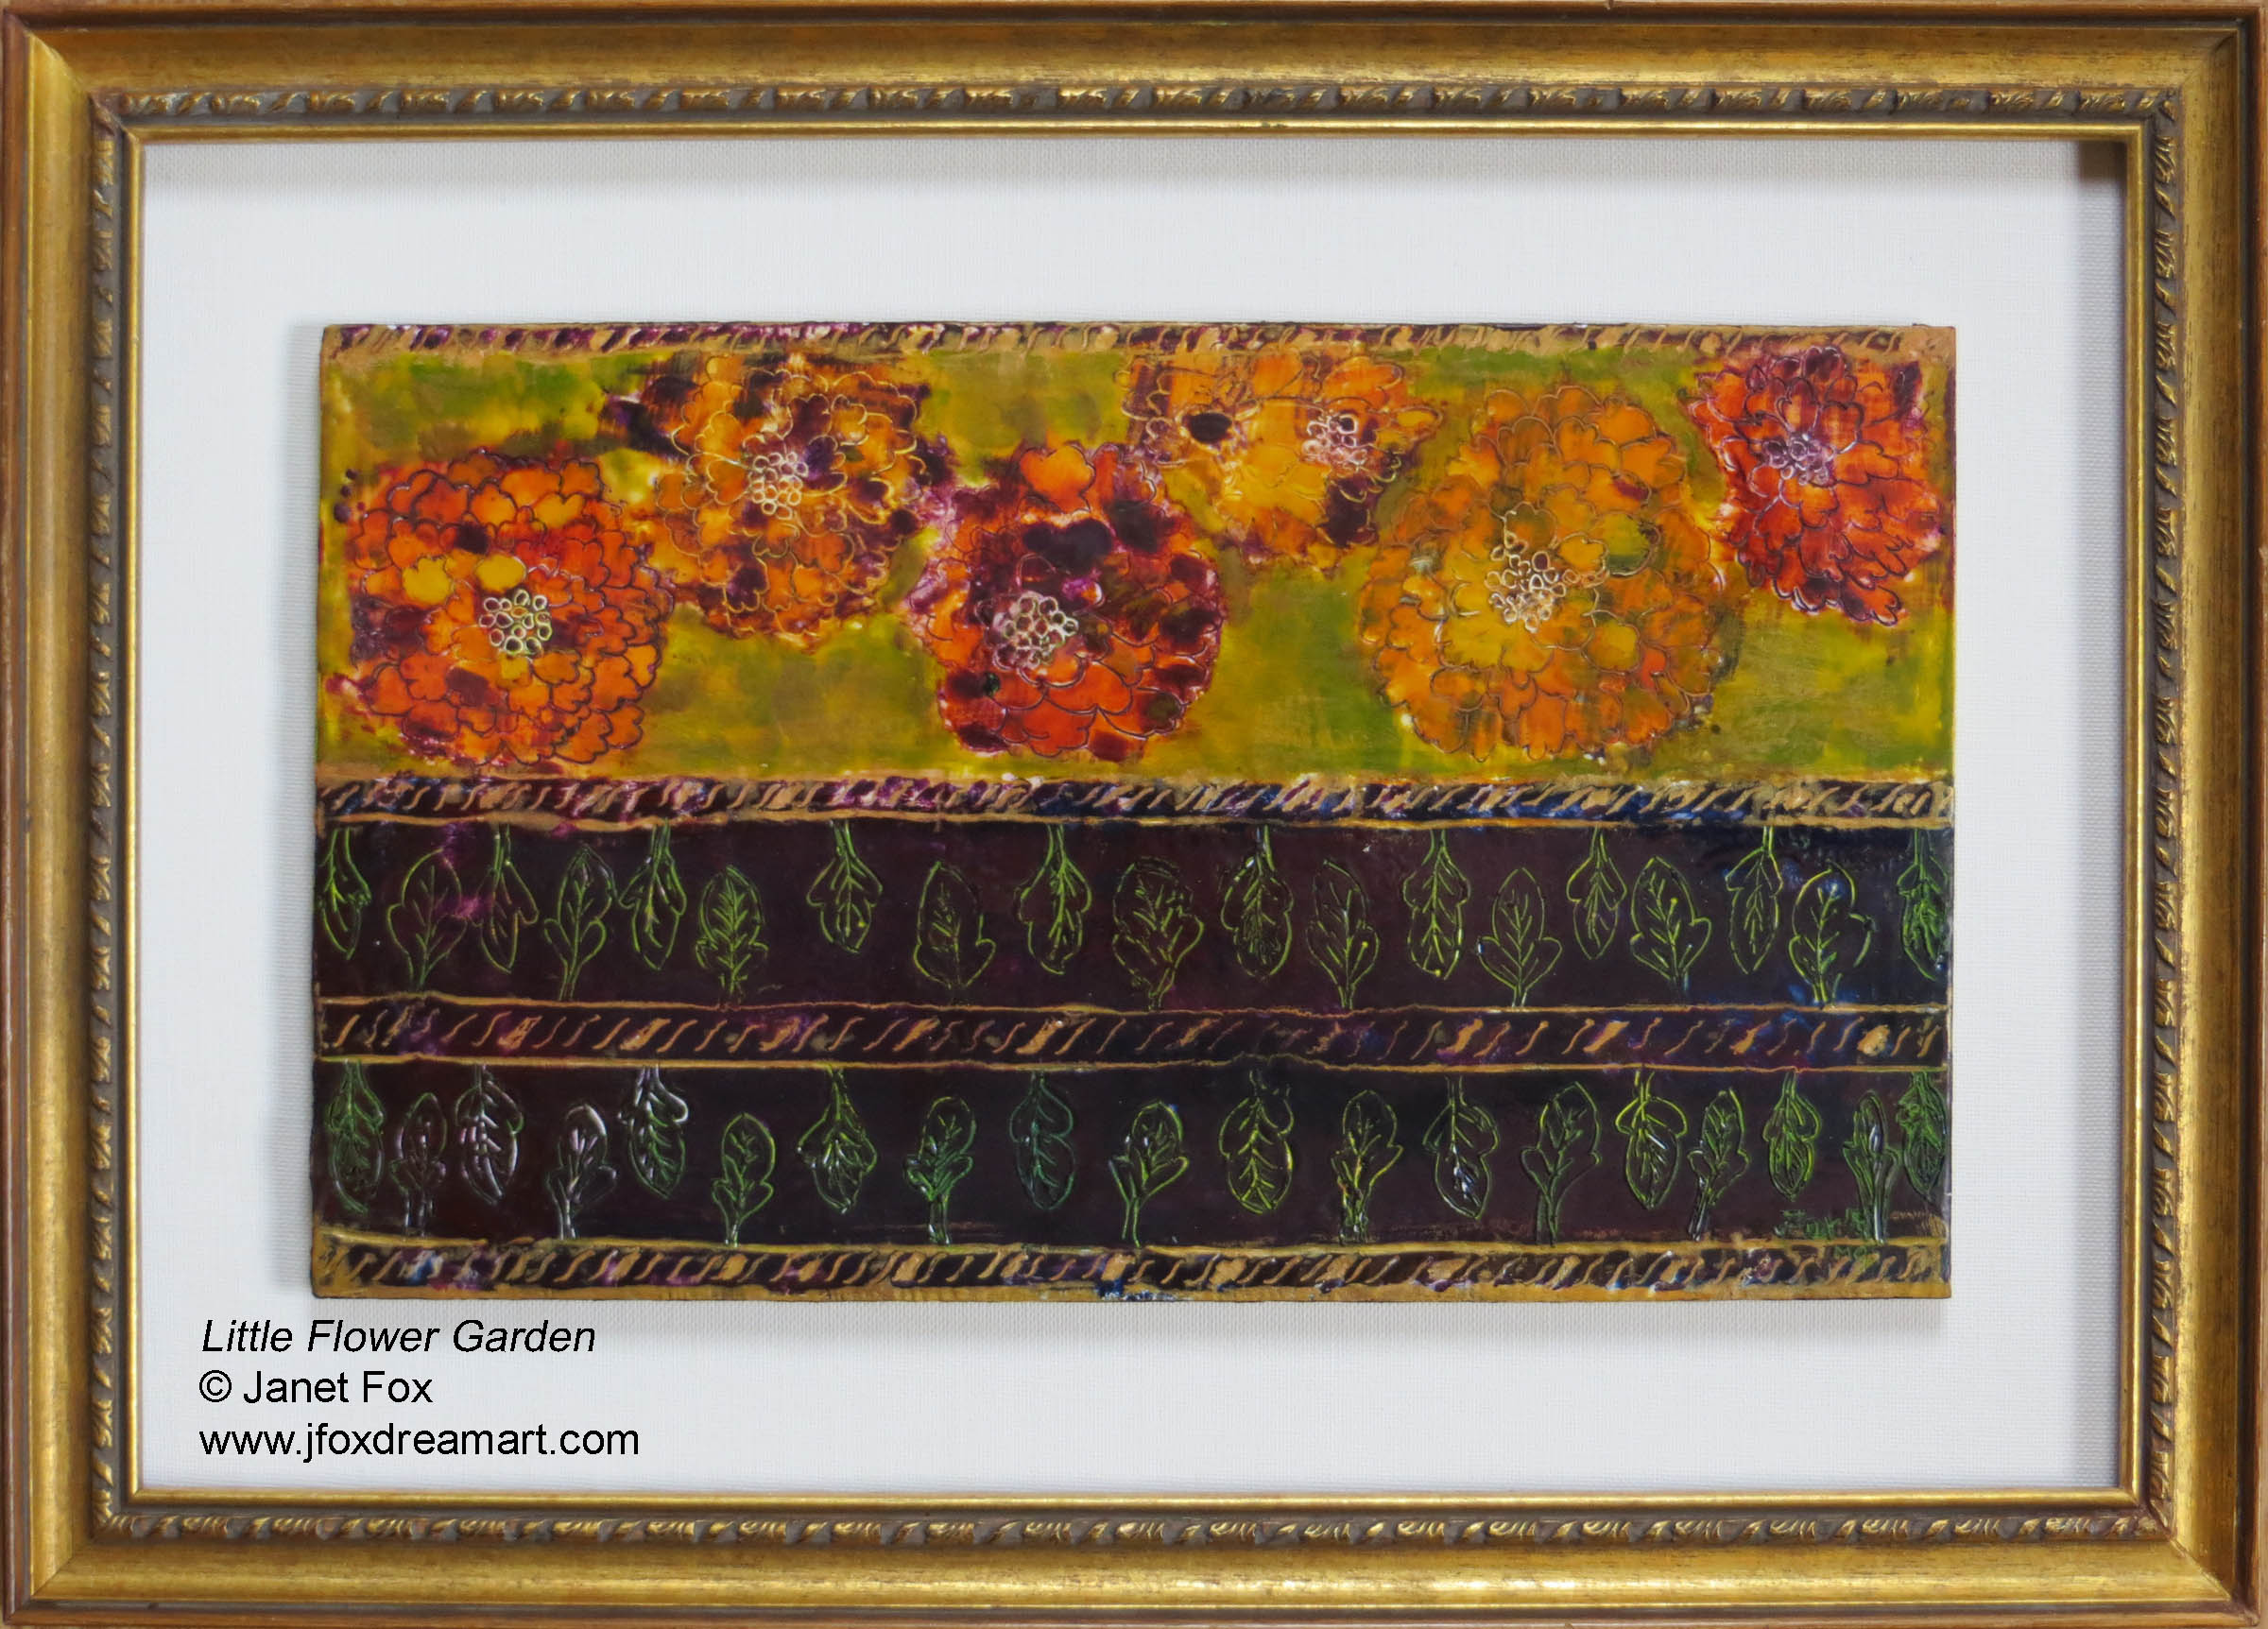 """Image of an encaustic painting by Janet Fox titled """"Little Flower Garden."""""""